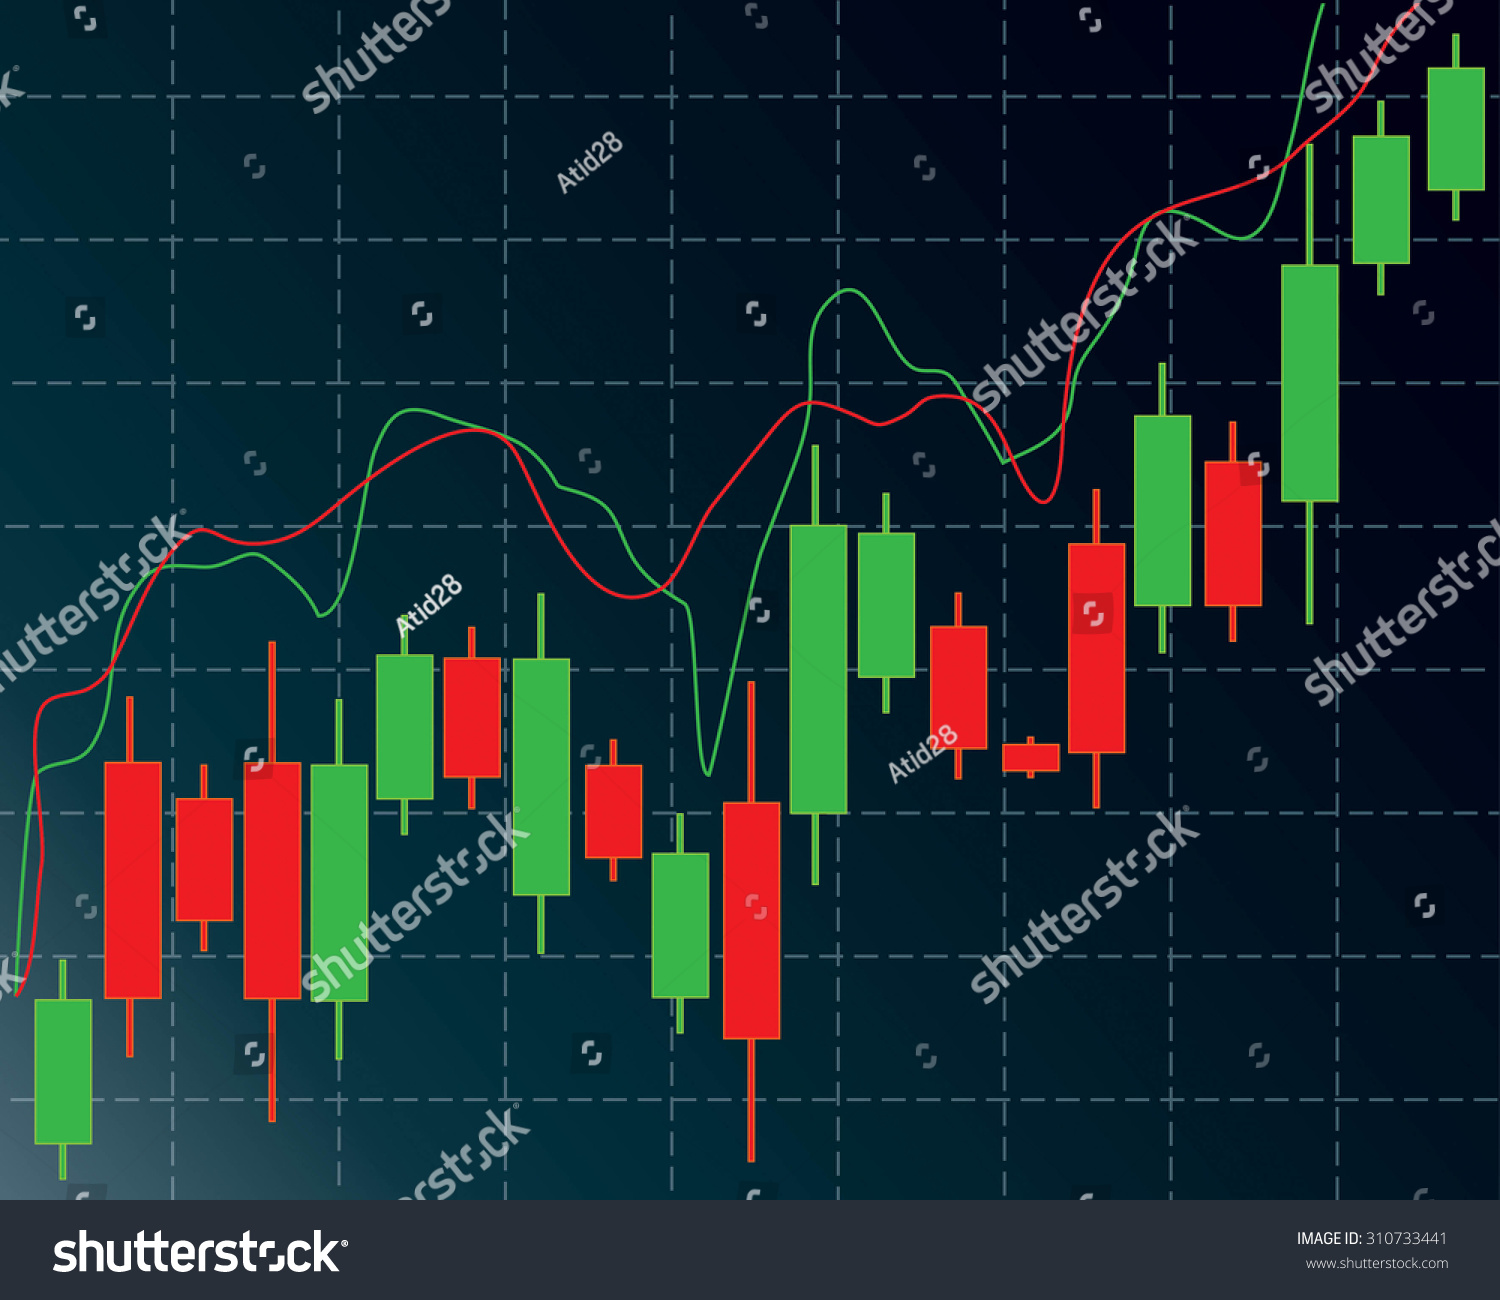 Candlesticks analysis forex